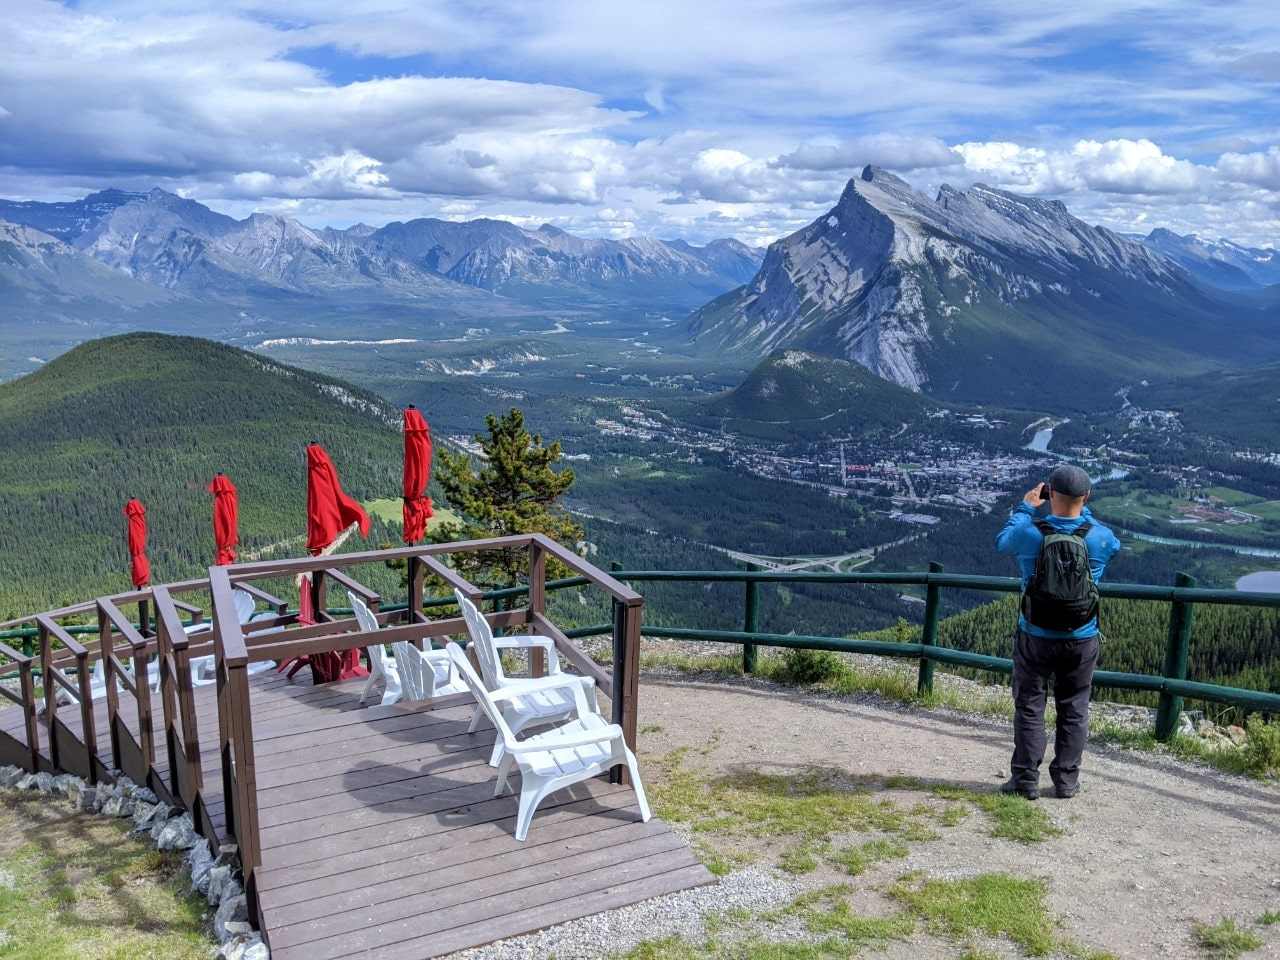 JR standing in front of mountain views at the top of Mt Norquay chairlift, taking a photo